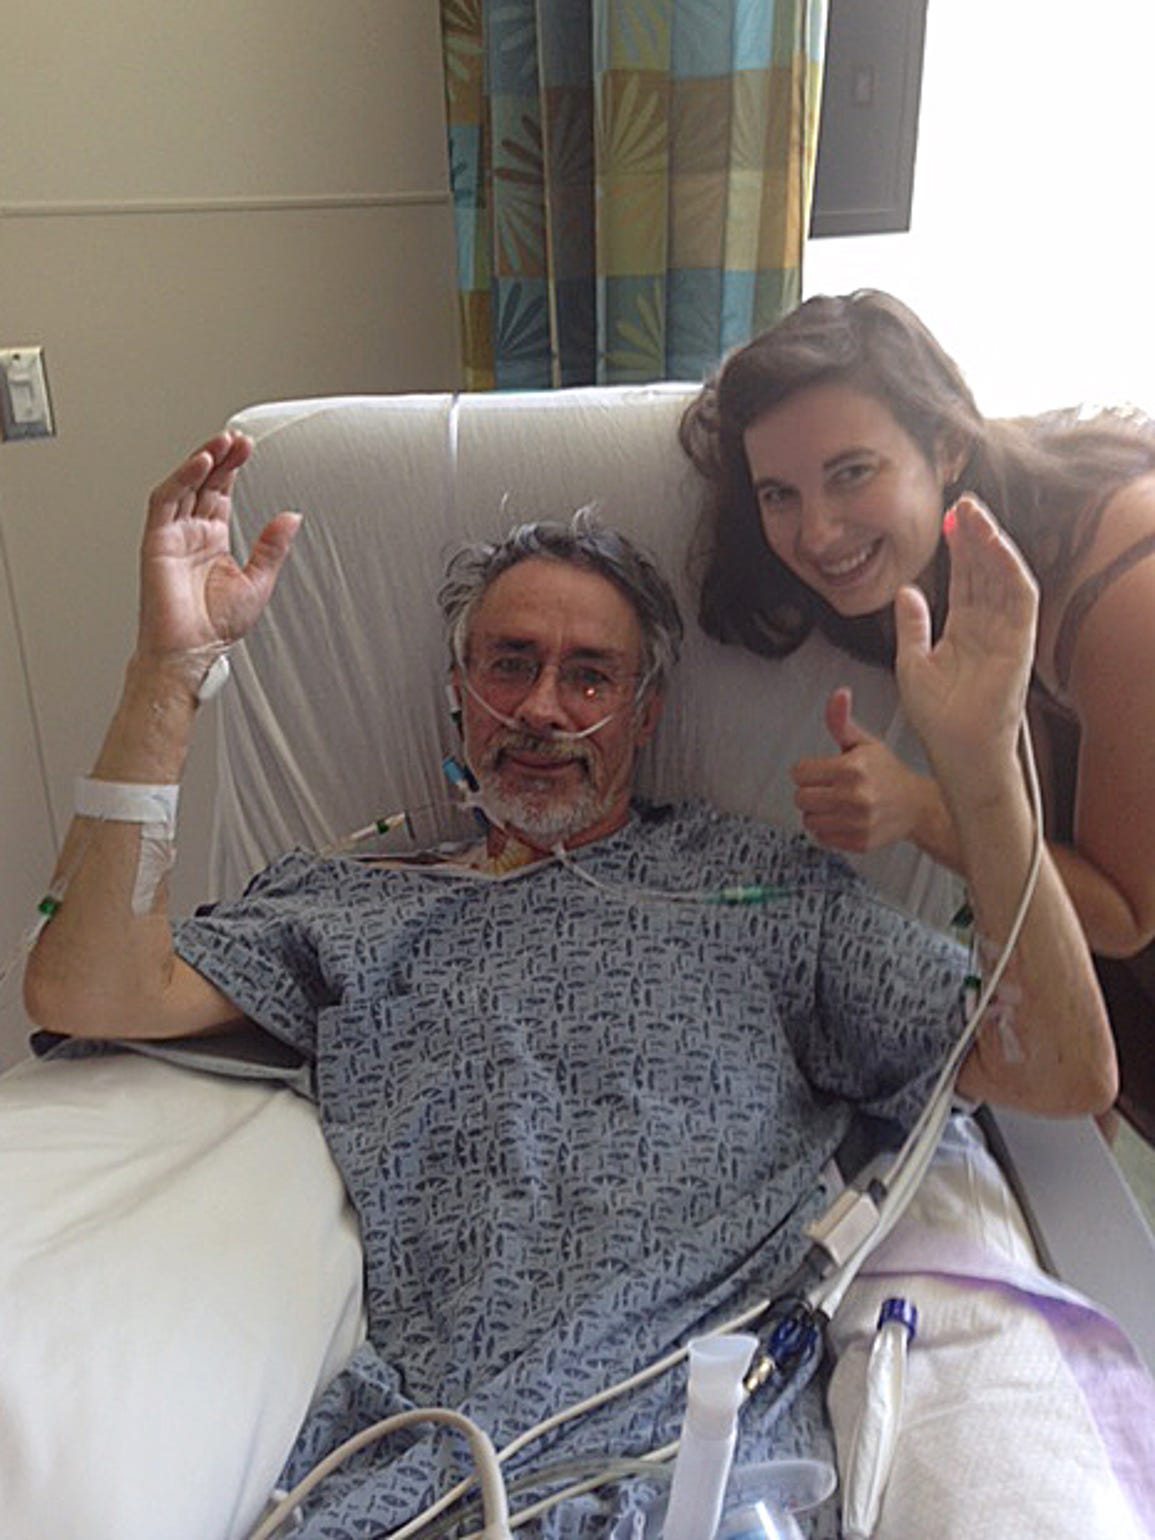 Rudy Caduff and his daughter Anna just before surgery.